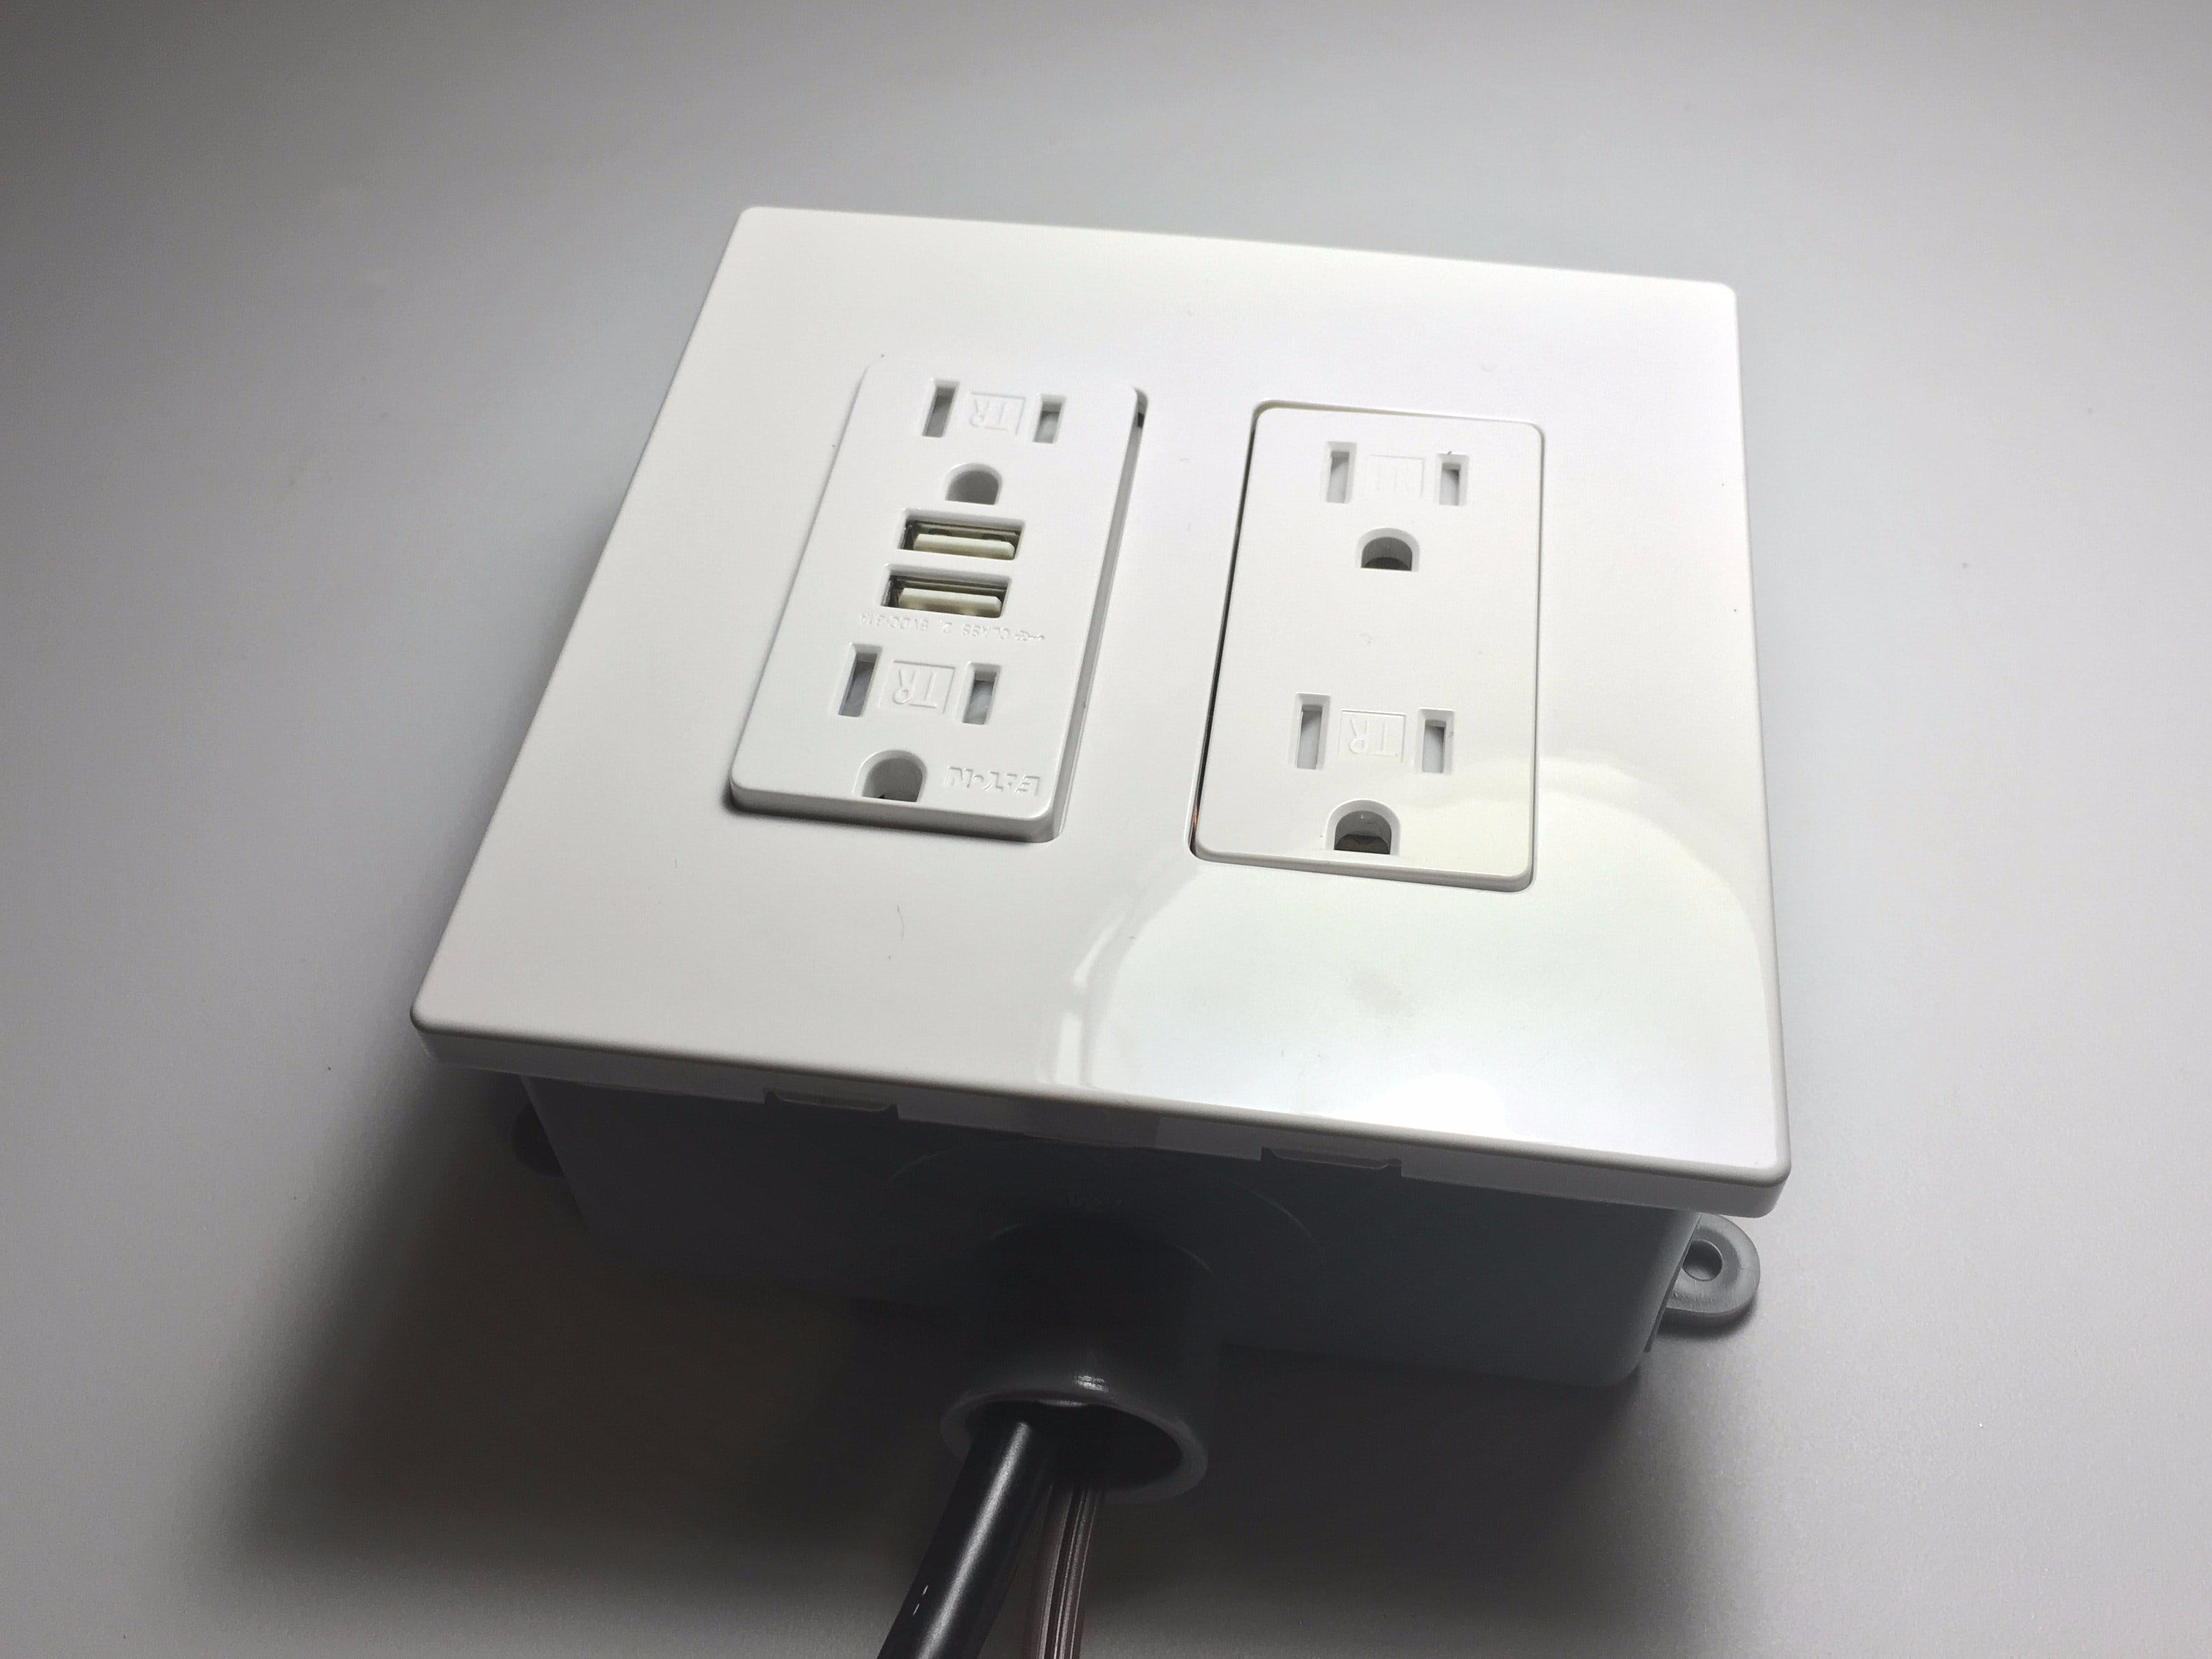 Bedroom Lamp Control & Charge